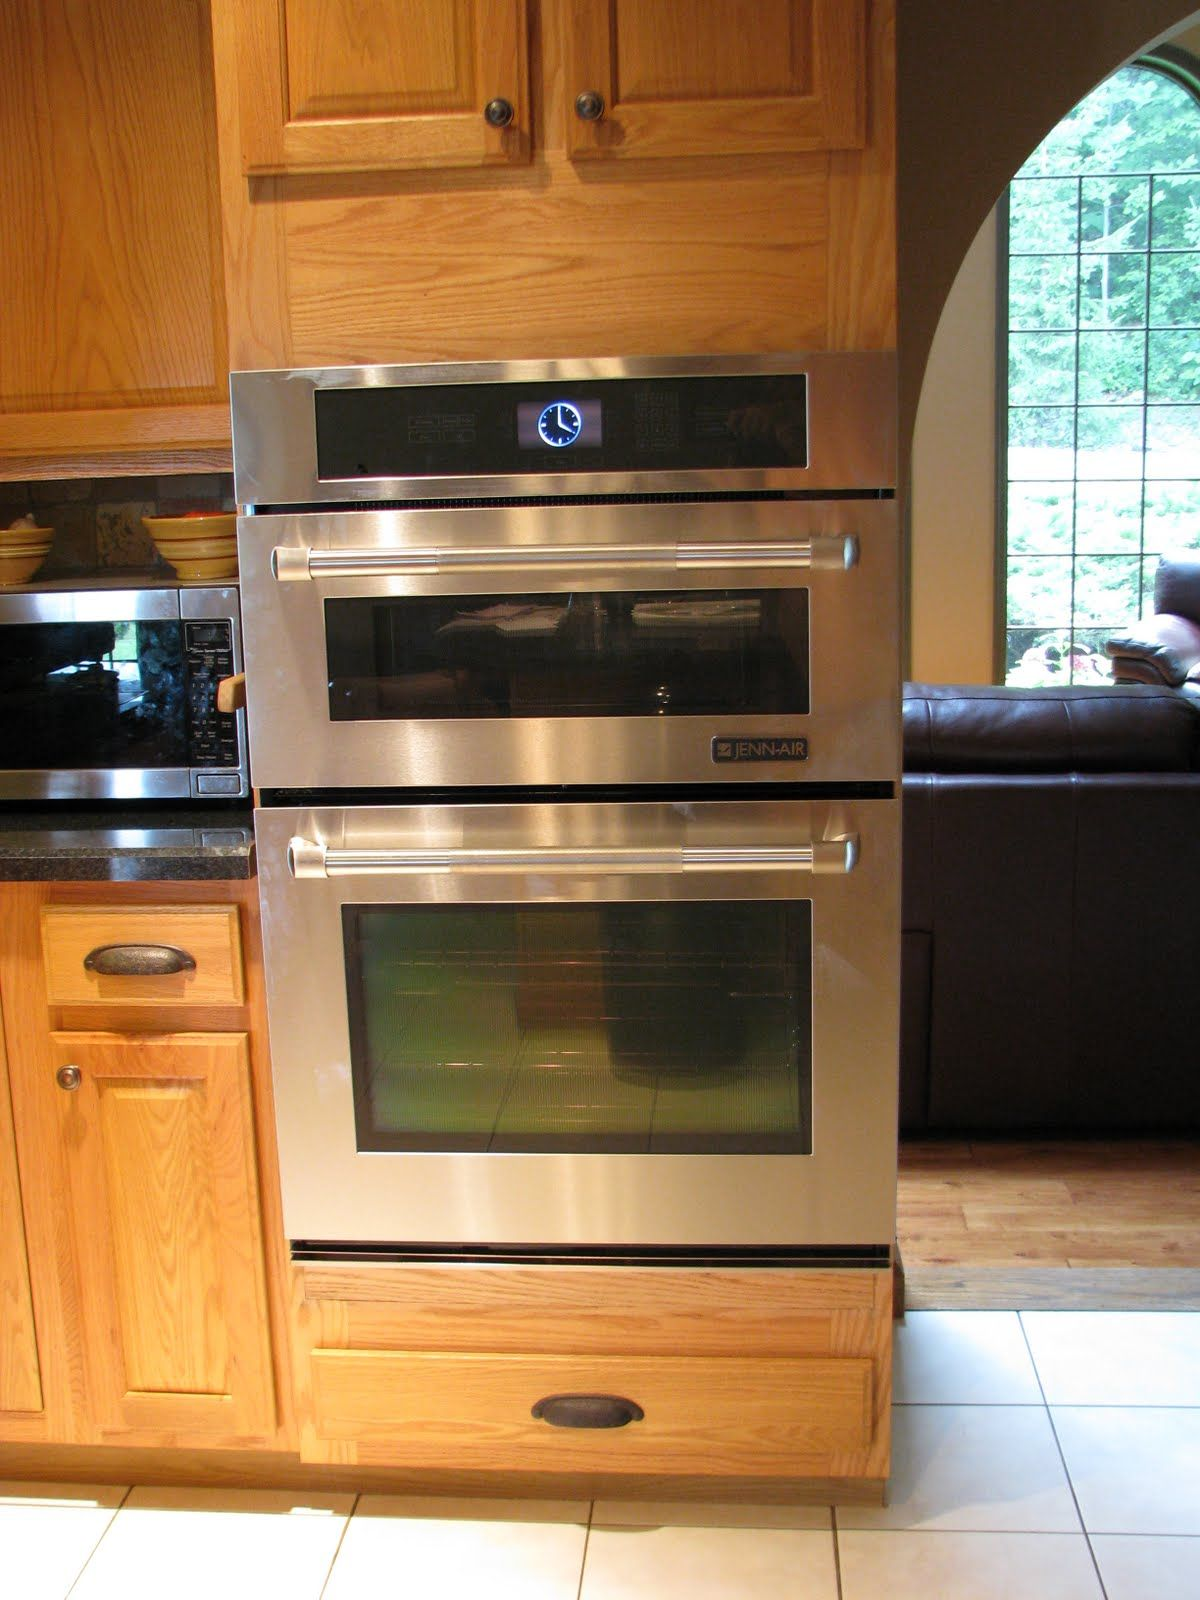 double wall oven like the smaller oven too